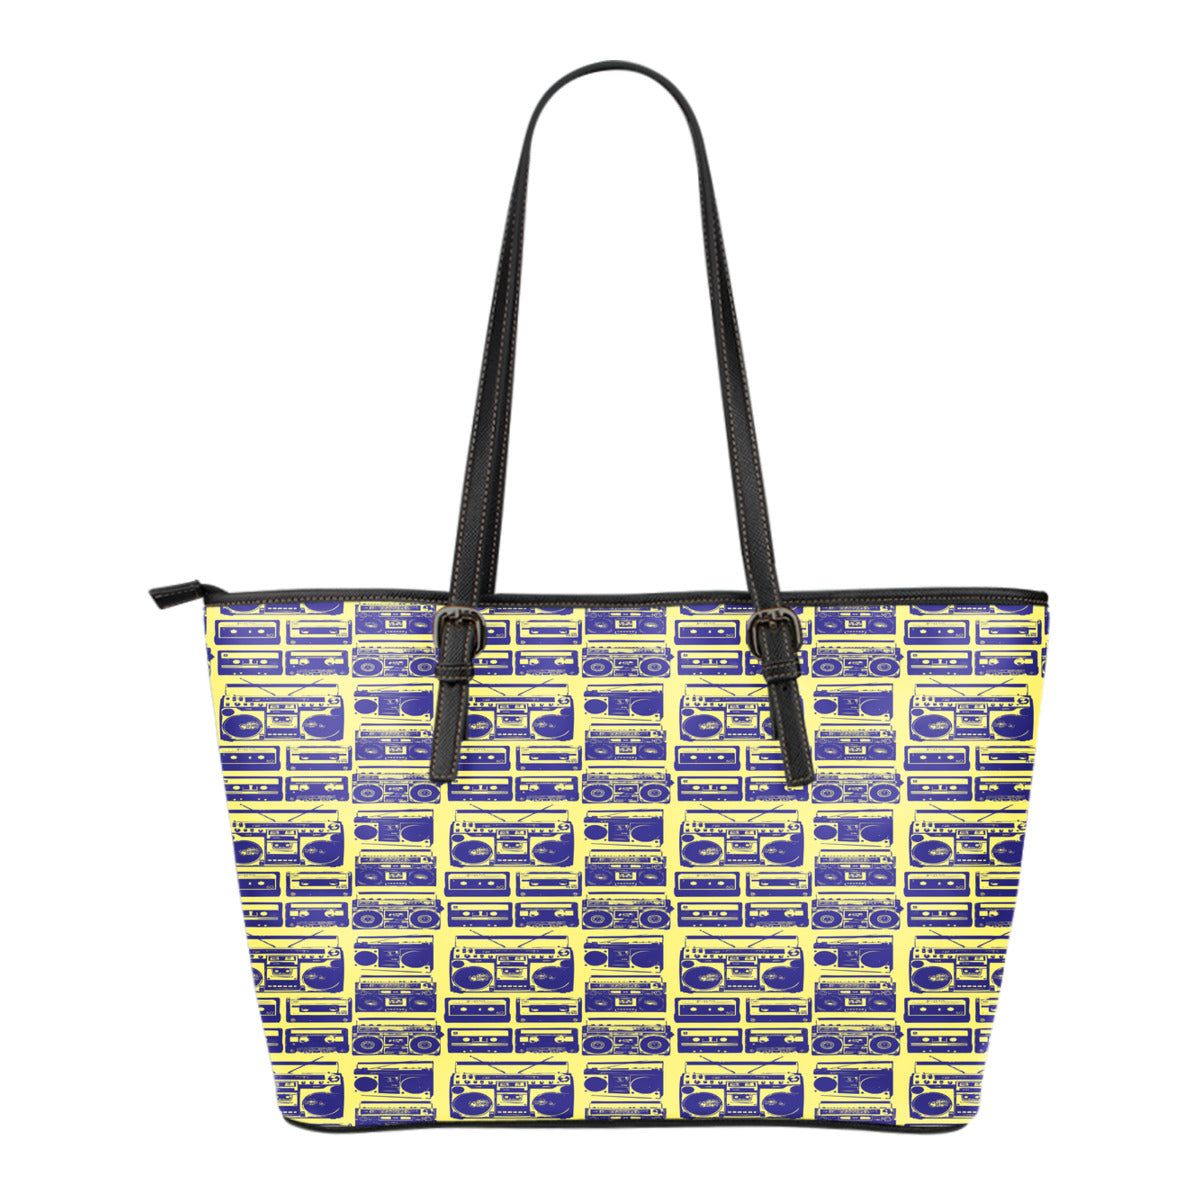 80s Boombox Themed Design C10 Women Small Leather Tote Bag